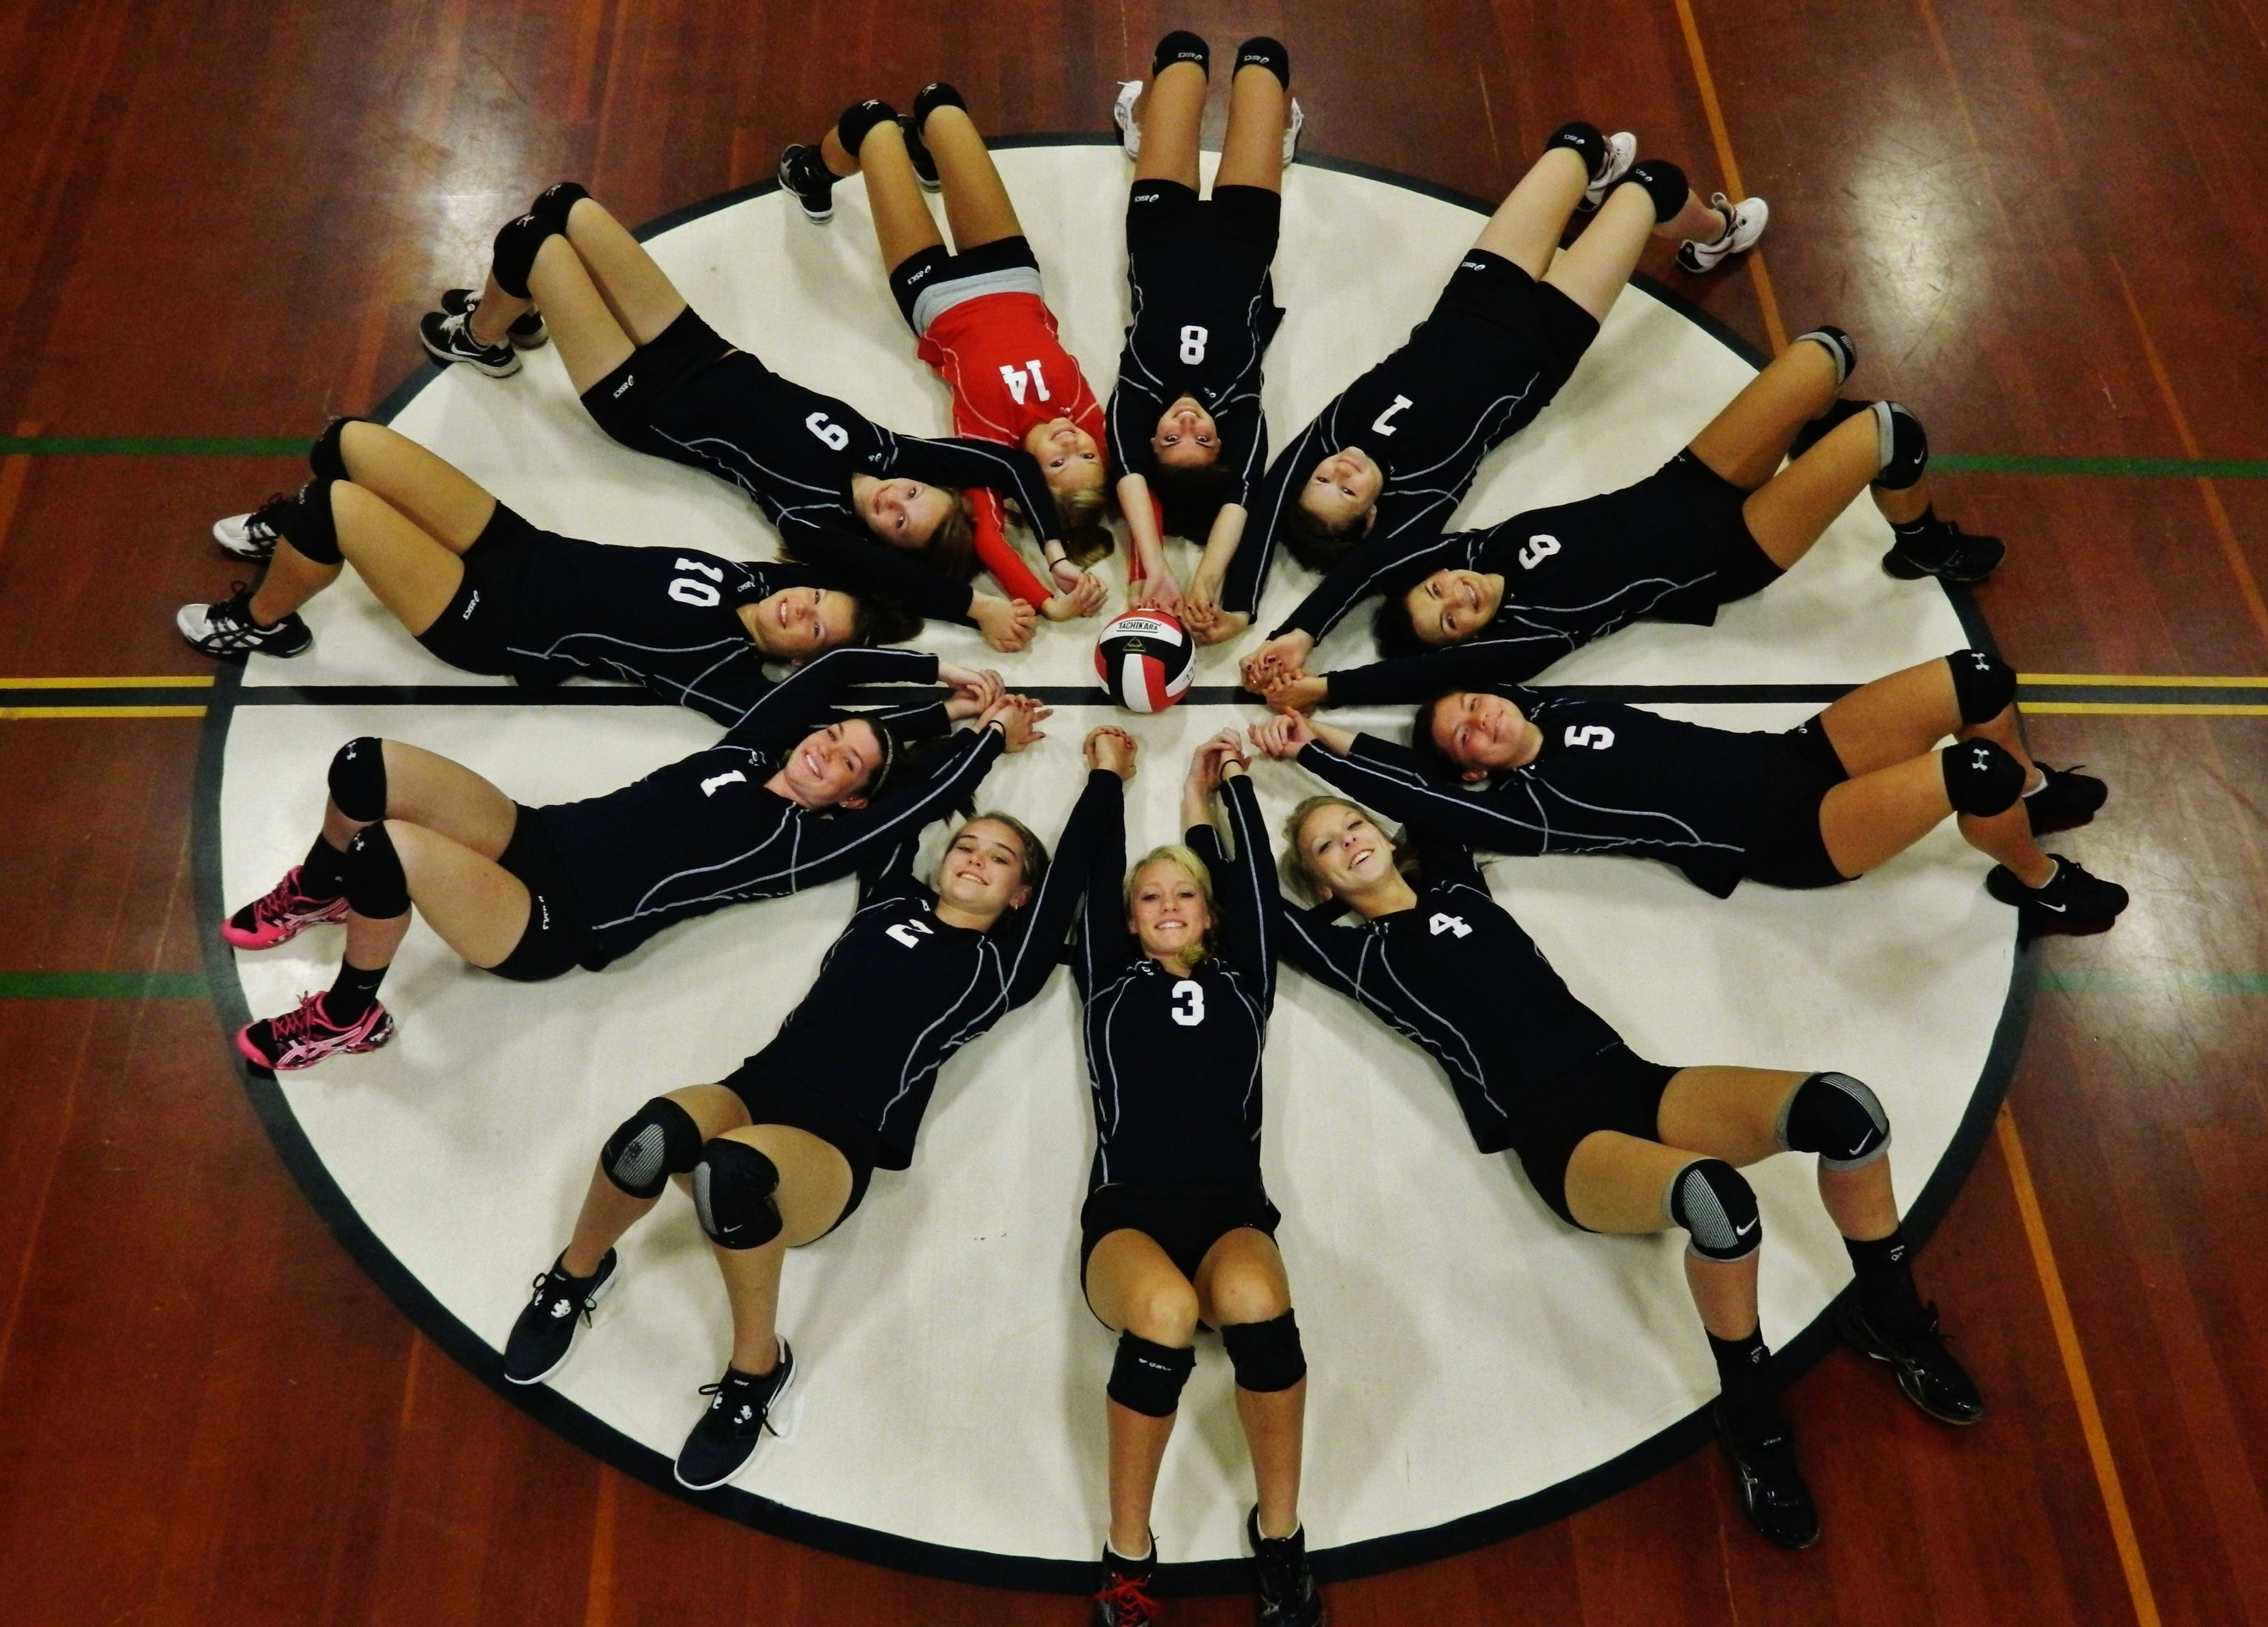 Volleyball Team Picture Ideas Volleyball Team Treat Ideas